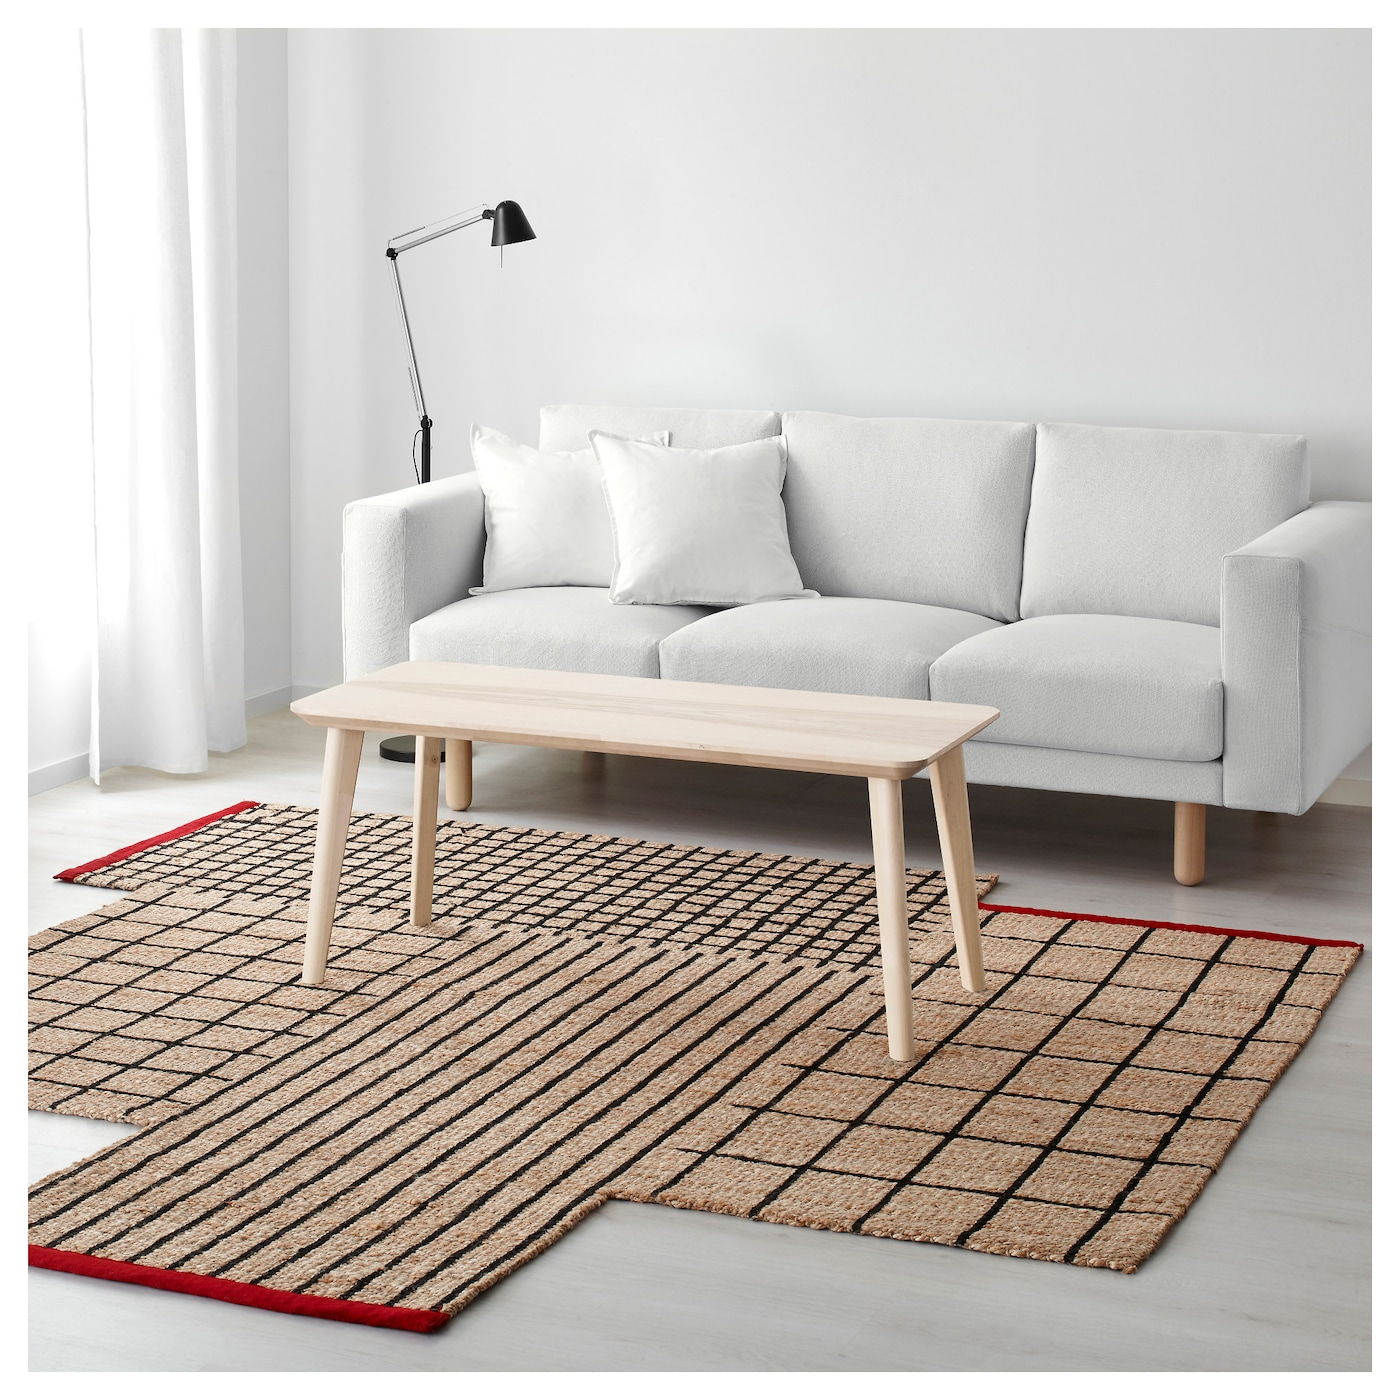 IKEA TERNSLEV rug, flatwoven Easy to vacuum thanks to its flat surface.